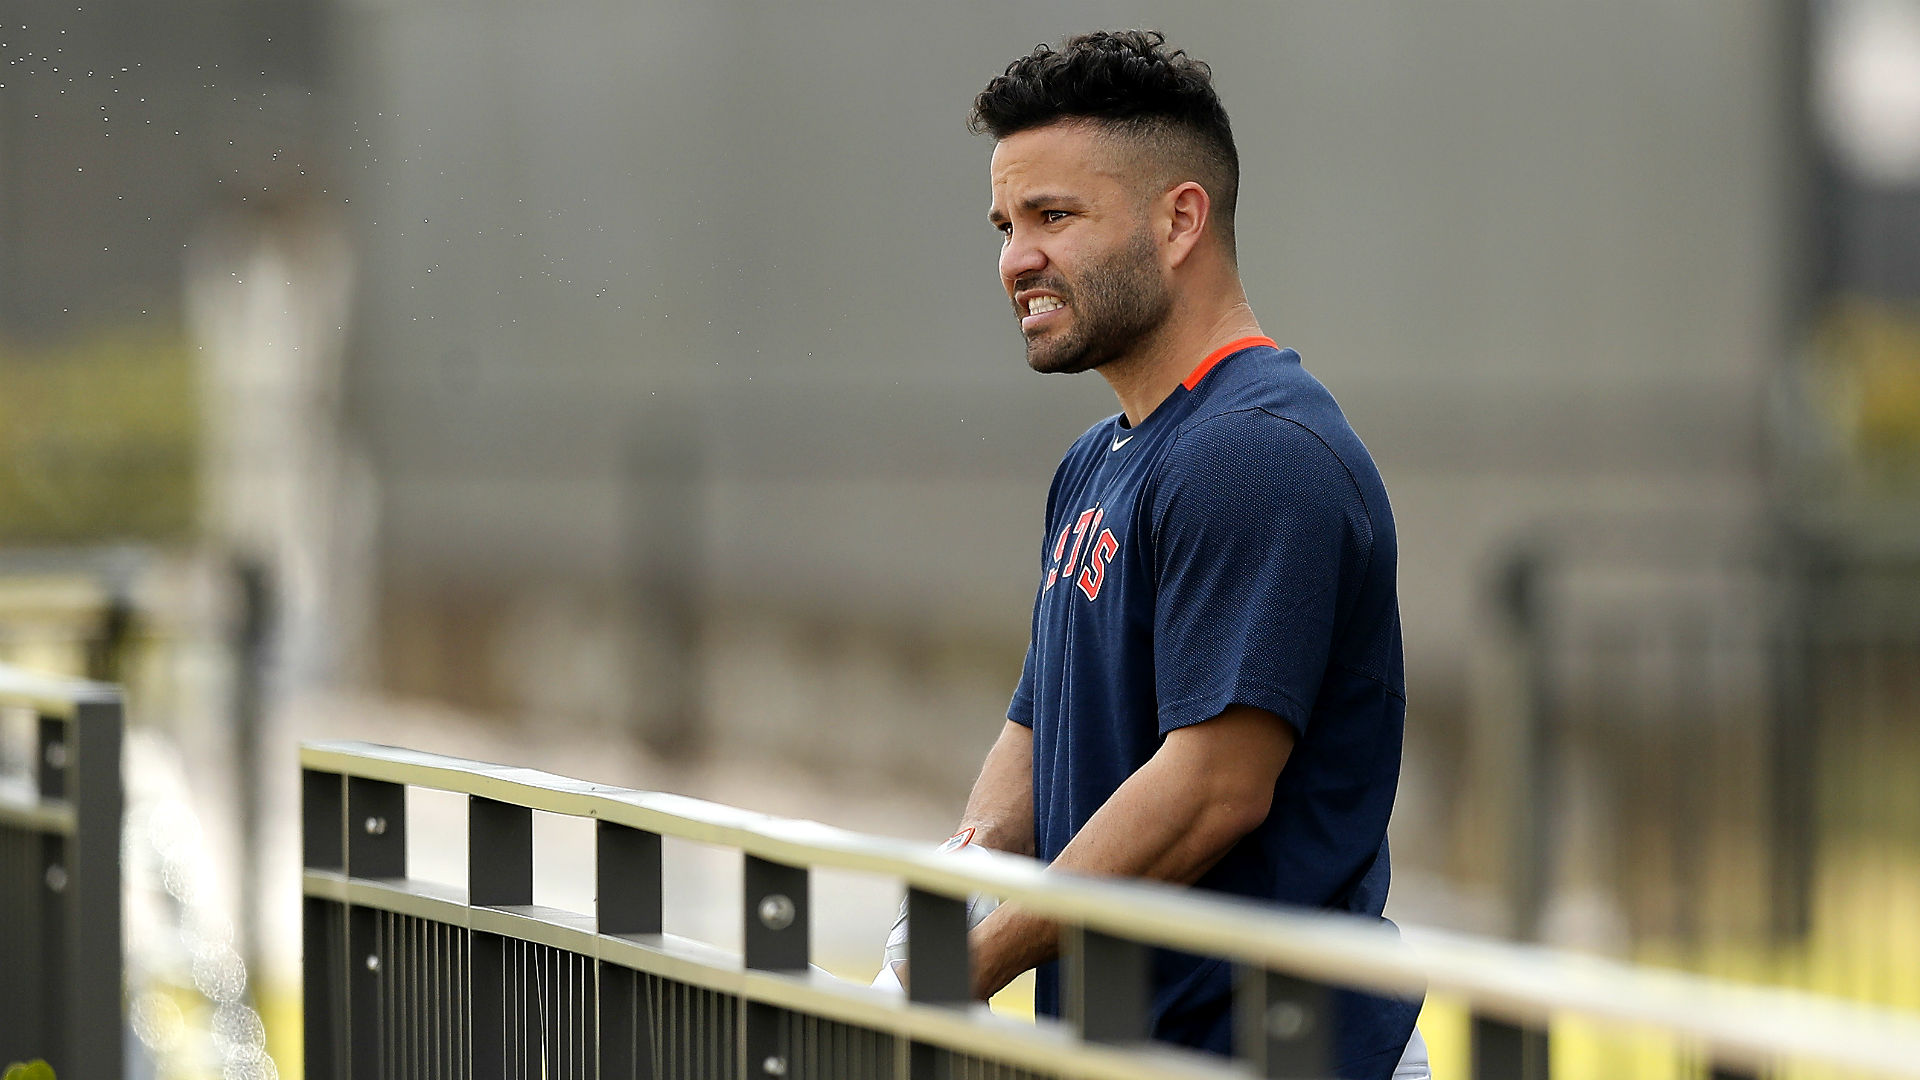 Jose Altuve's tattoo timeline: What it looks like, when he got it, and why is it hidden?